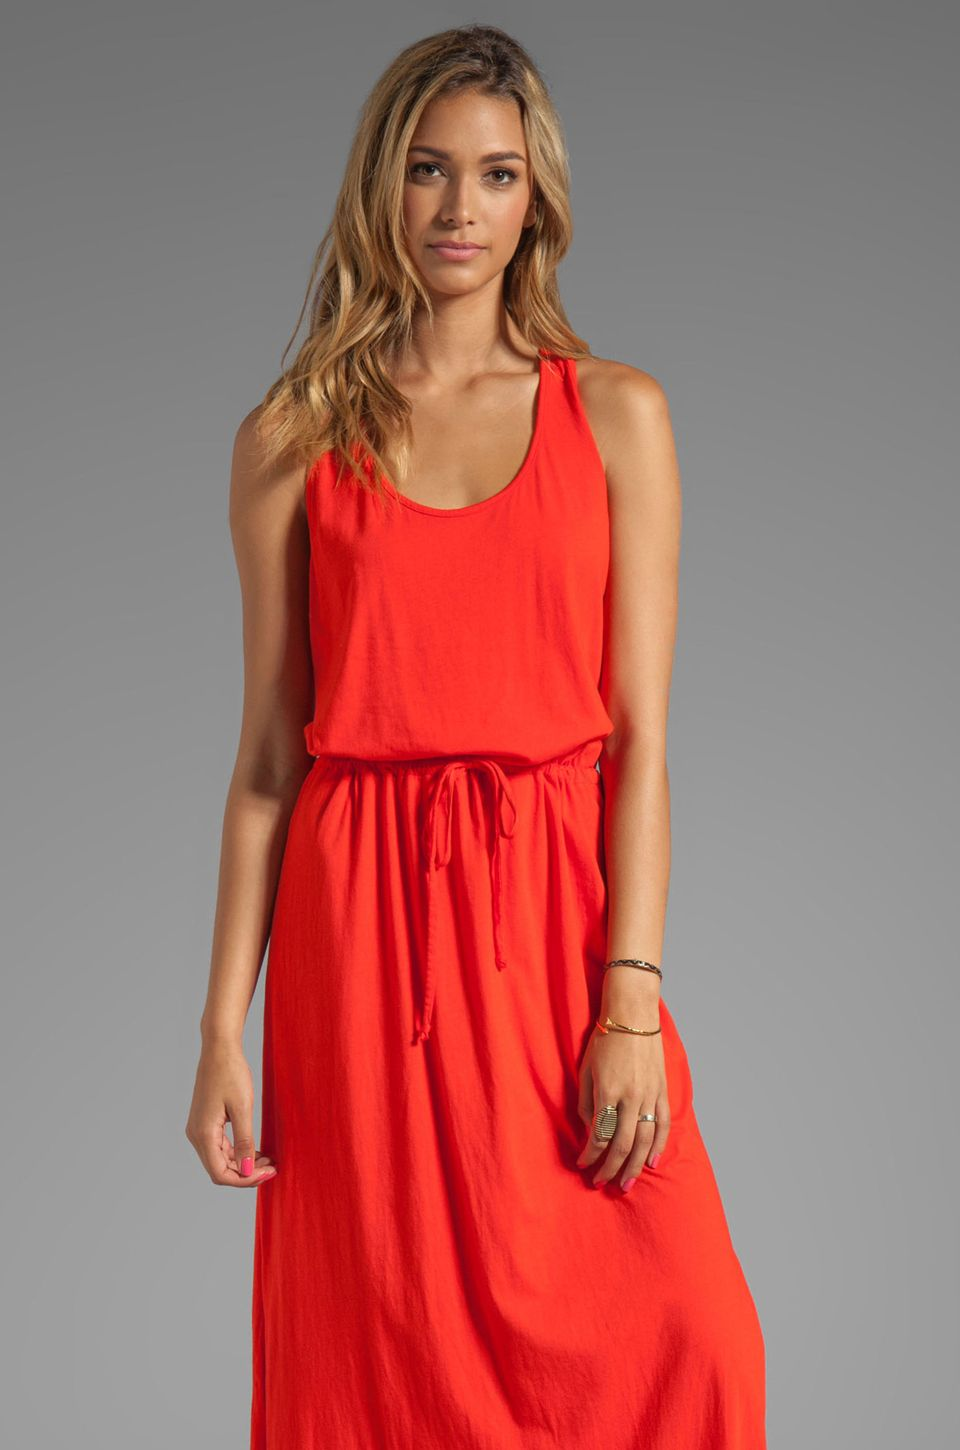 Awesome Color And Great Dress For Going To The Beach Which Pair Of Michael Stars Sungles Will You Wear With This